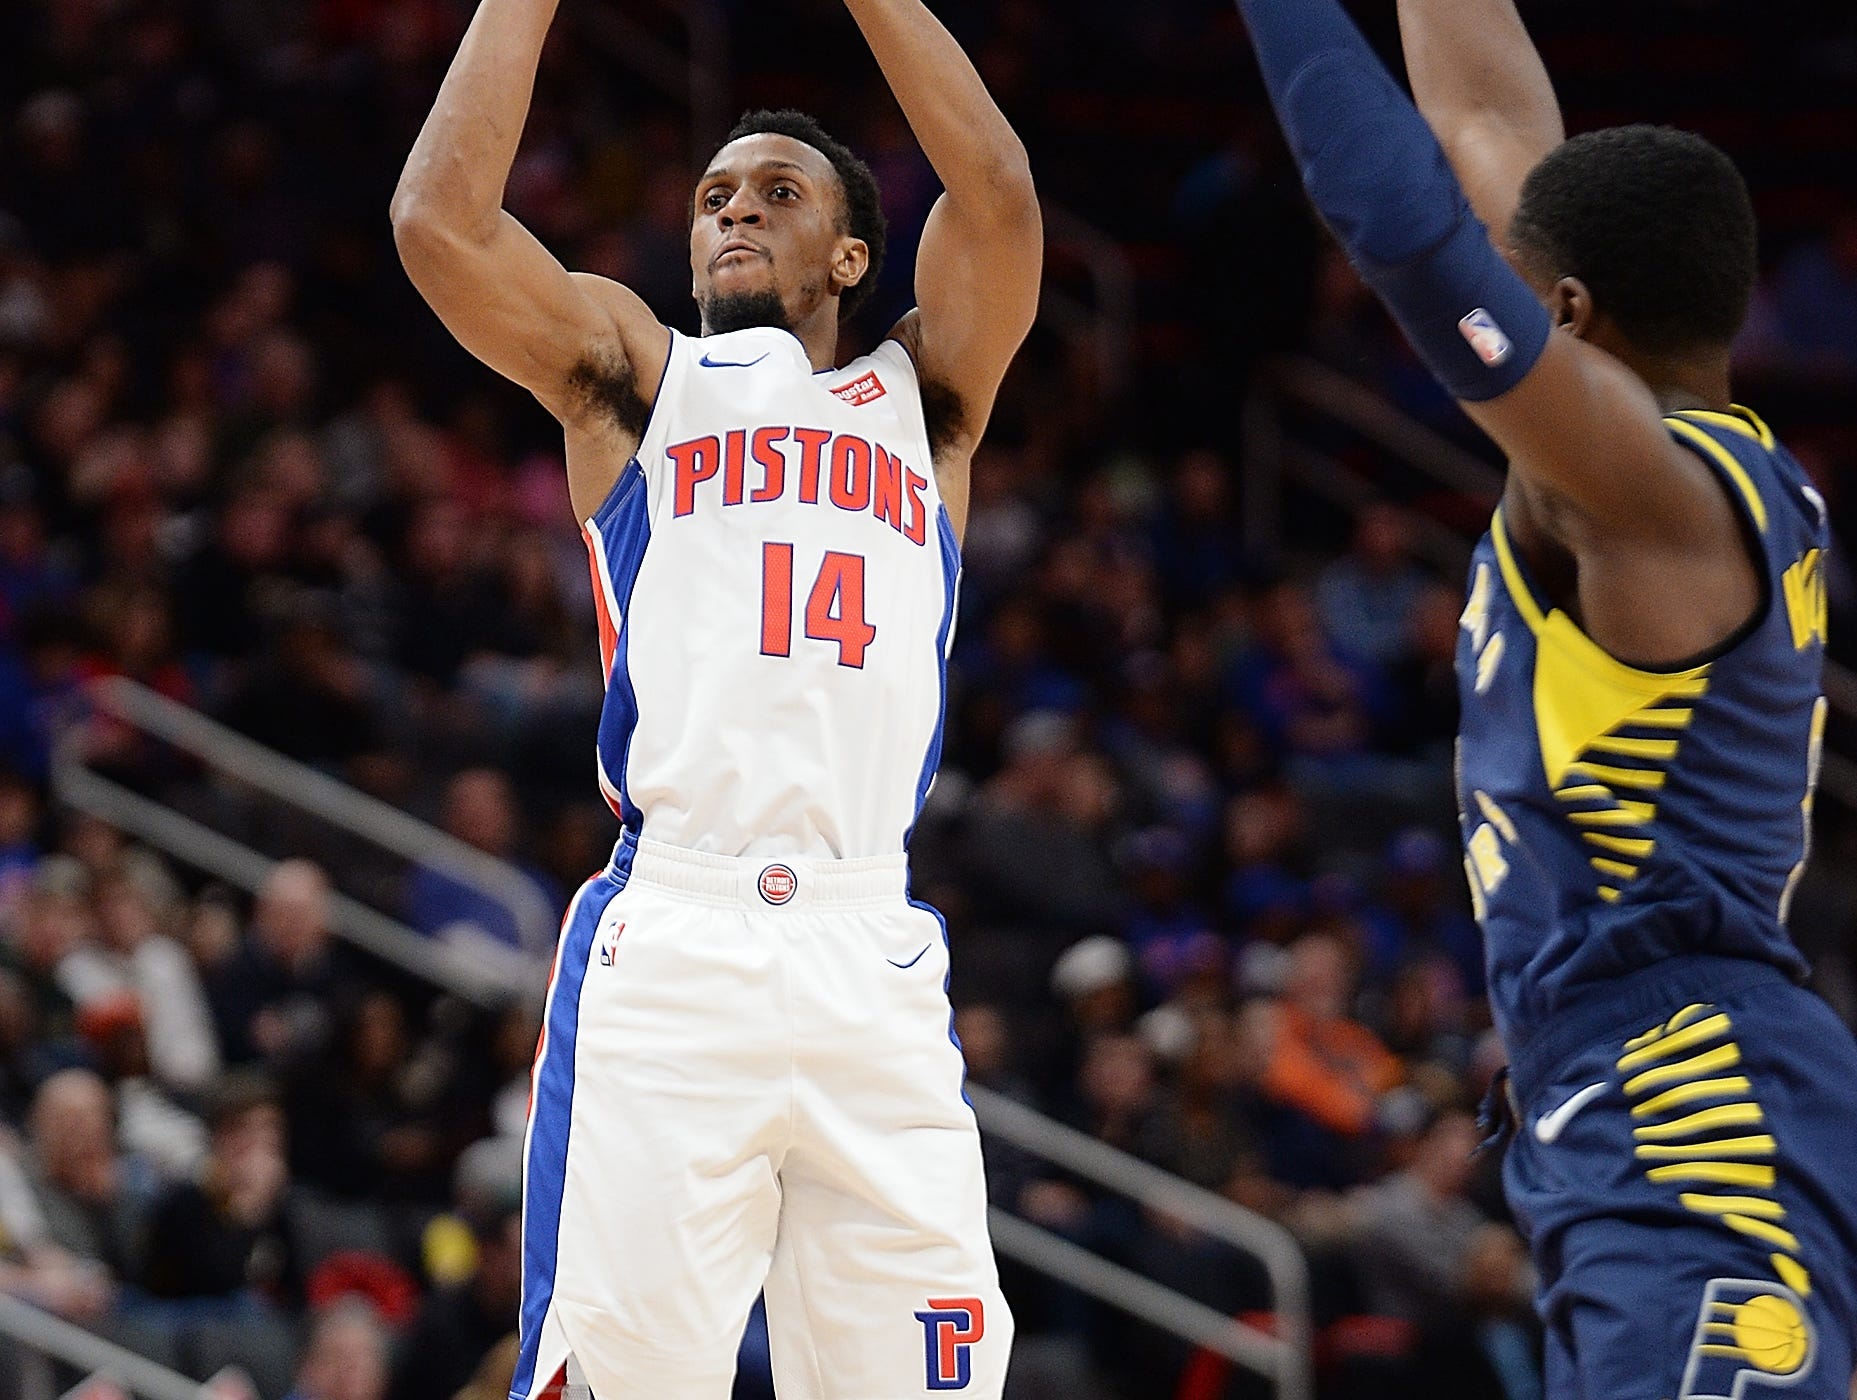 Pistons' Ish Smith shoots over Pacers' Aaron Holiday in the second quarter.